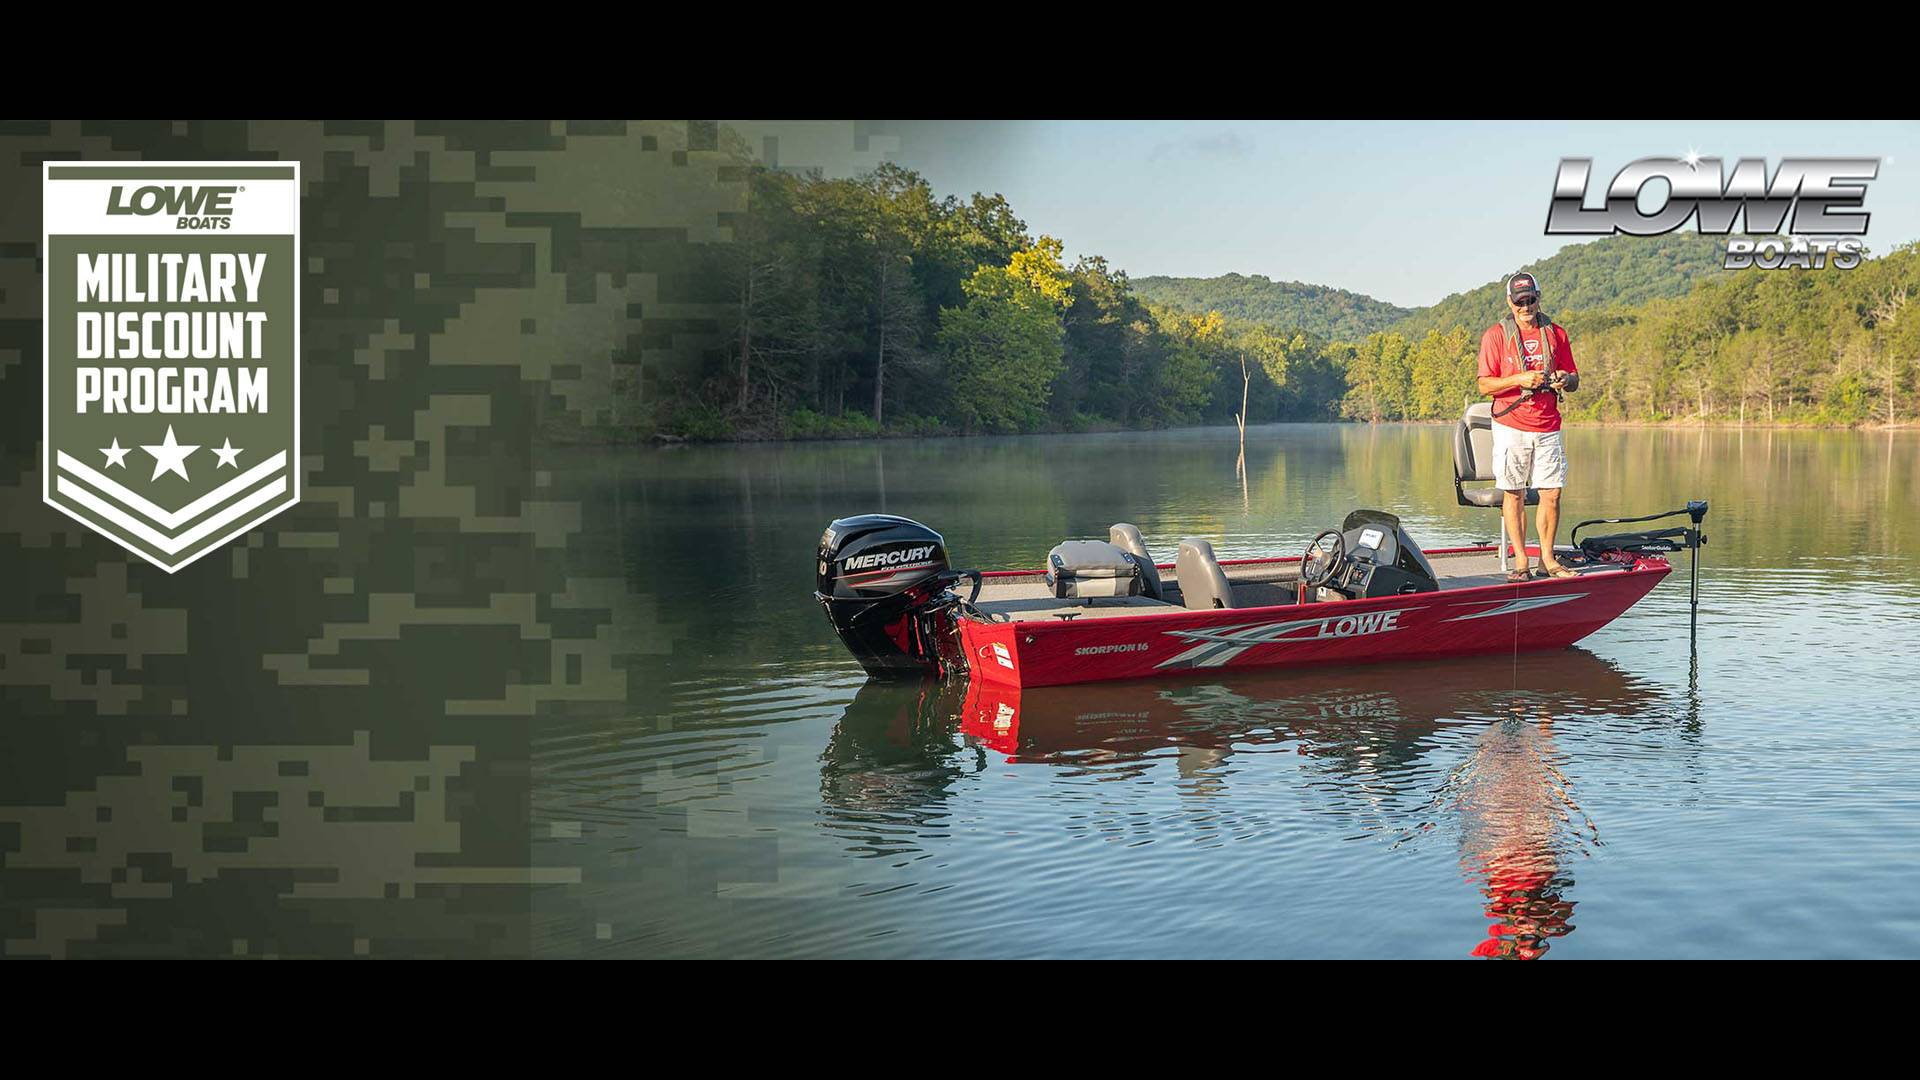 Mitchell Marine Is Located In Lagrange Ga Shop Our Large